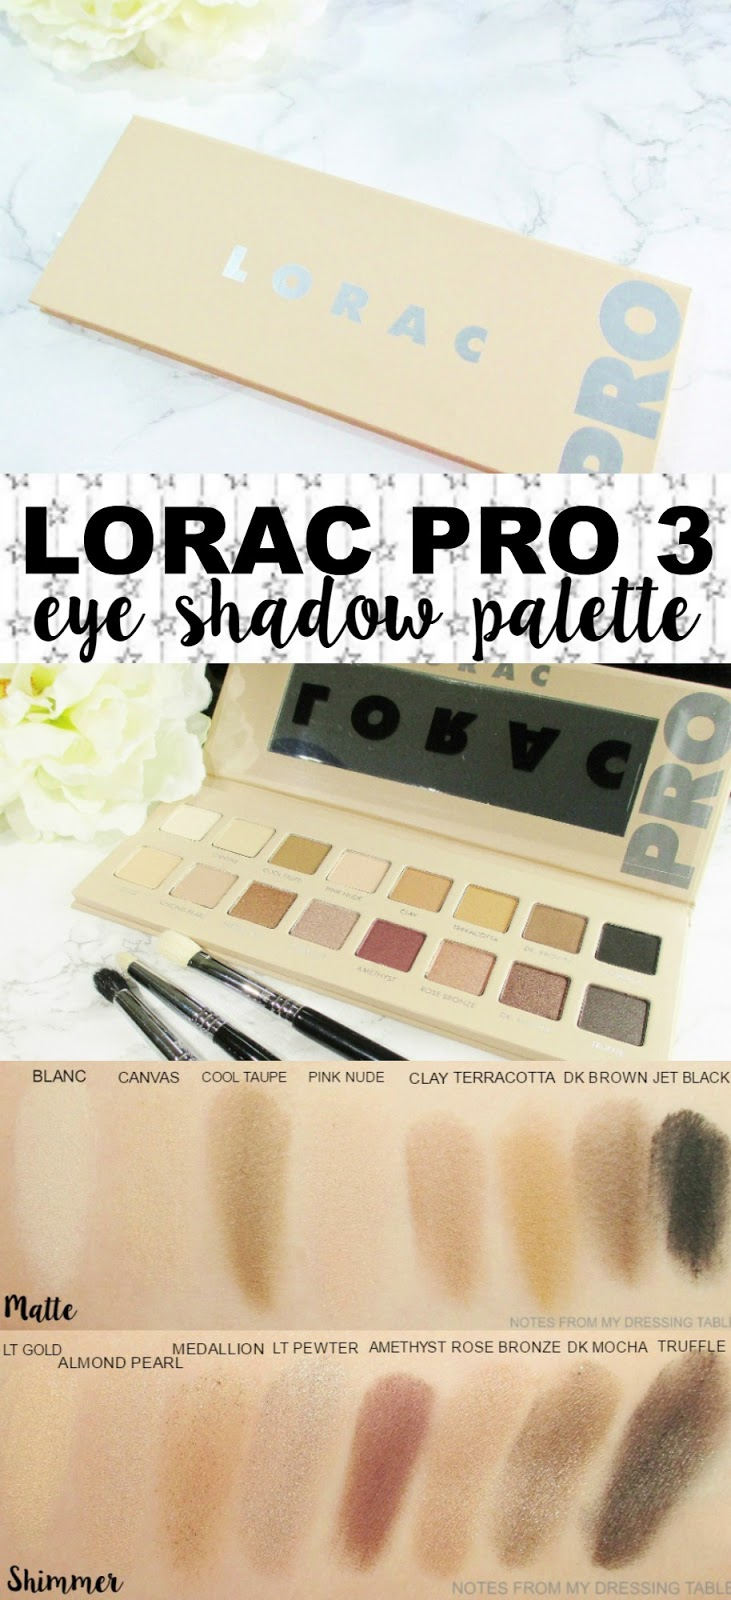 lorac-pro-3-eye-shadow-palette-5